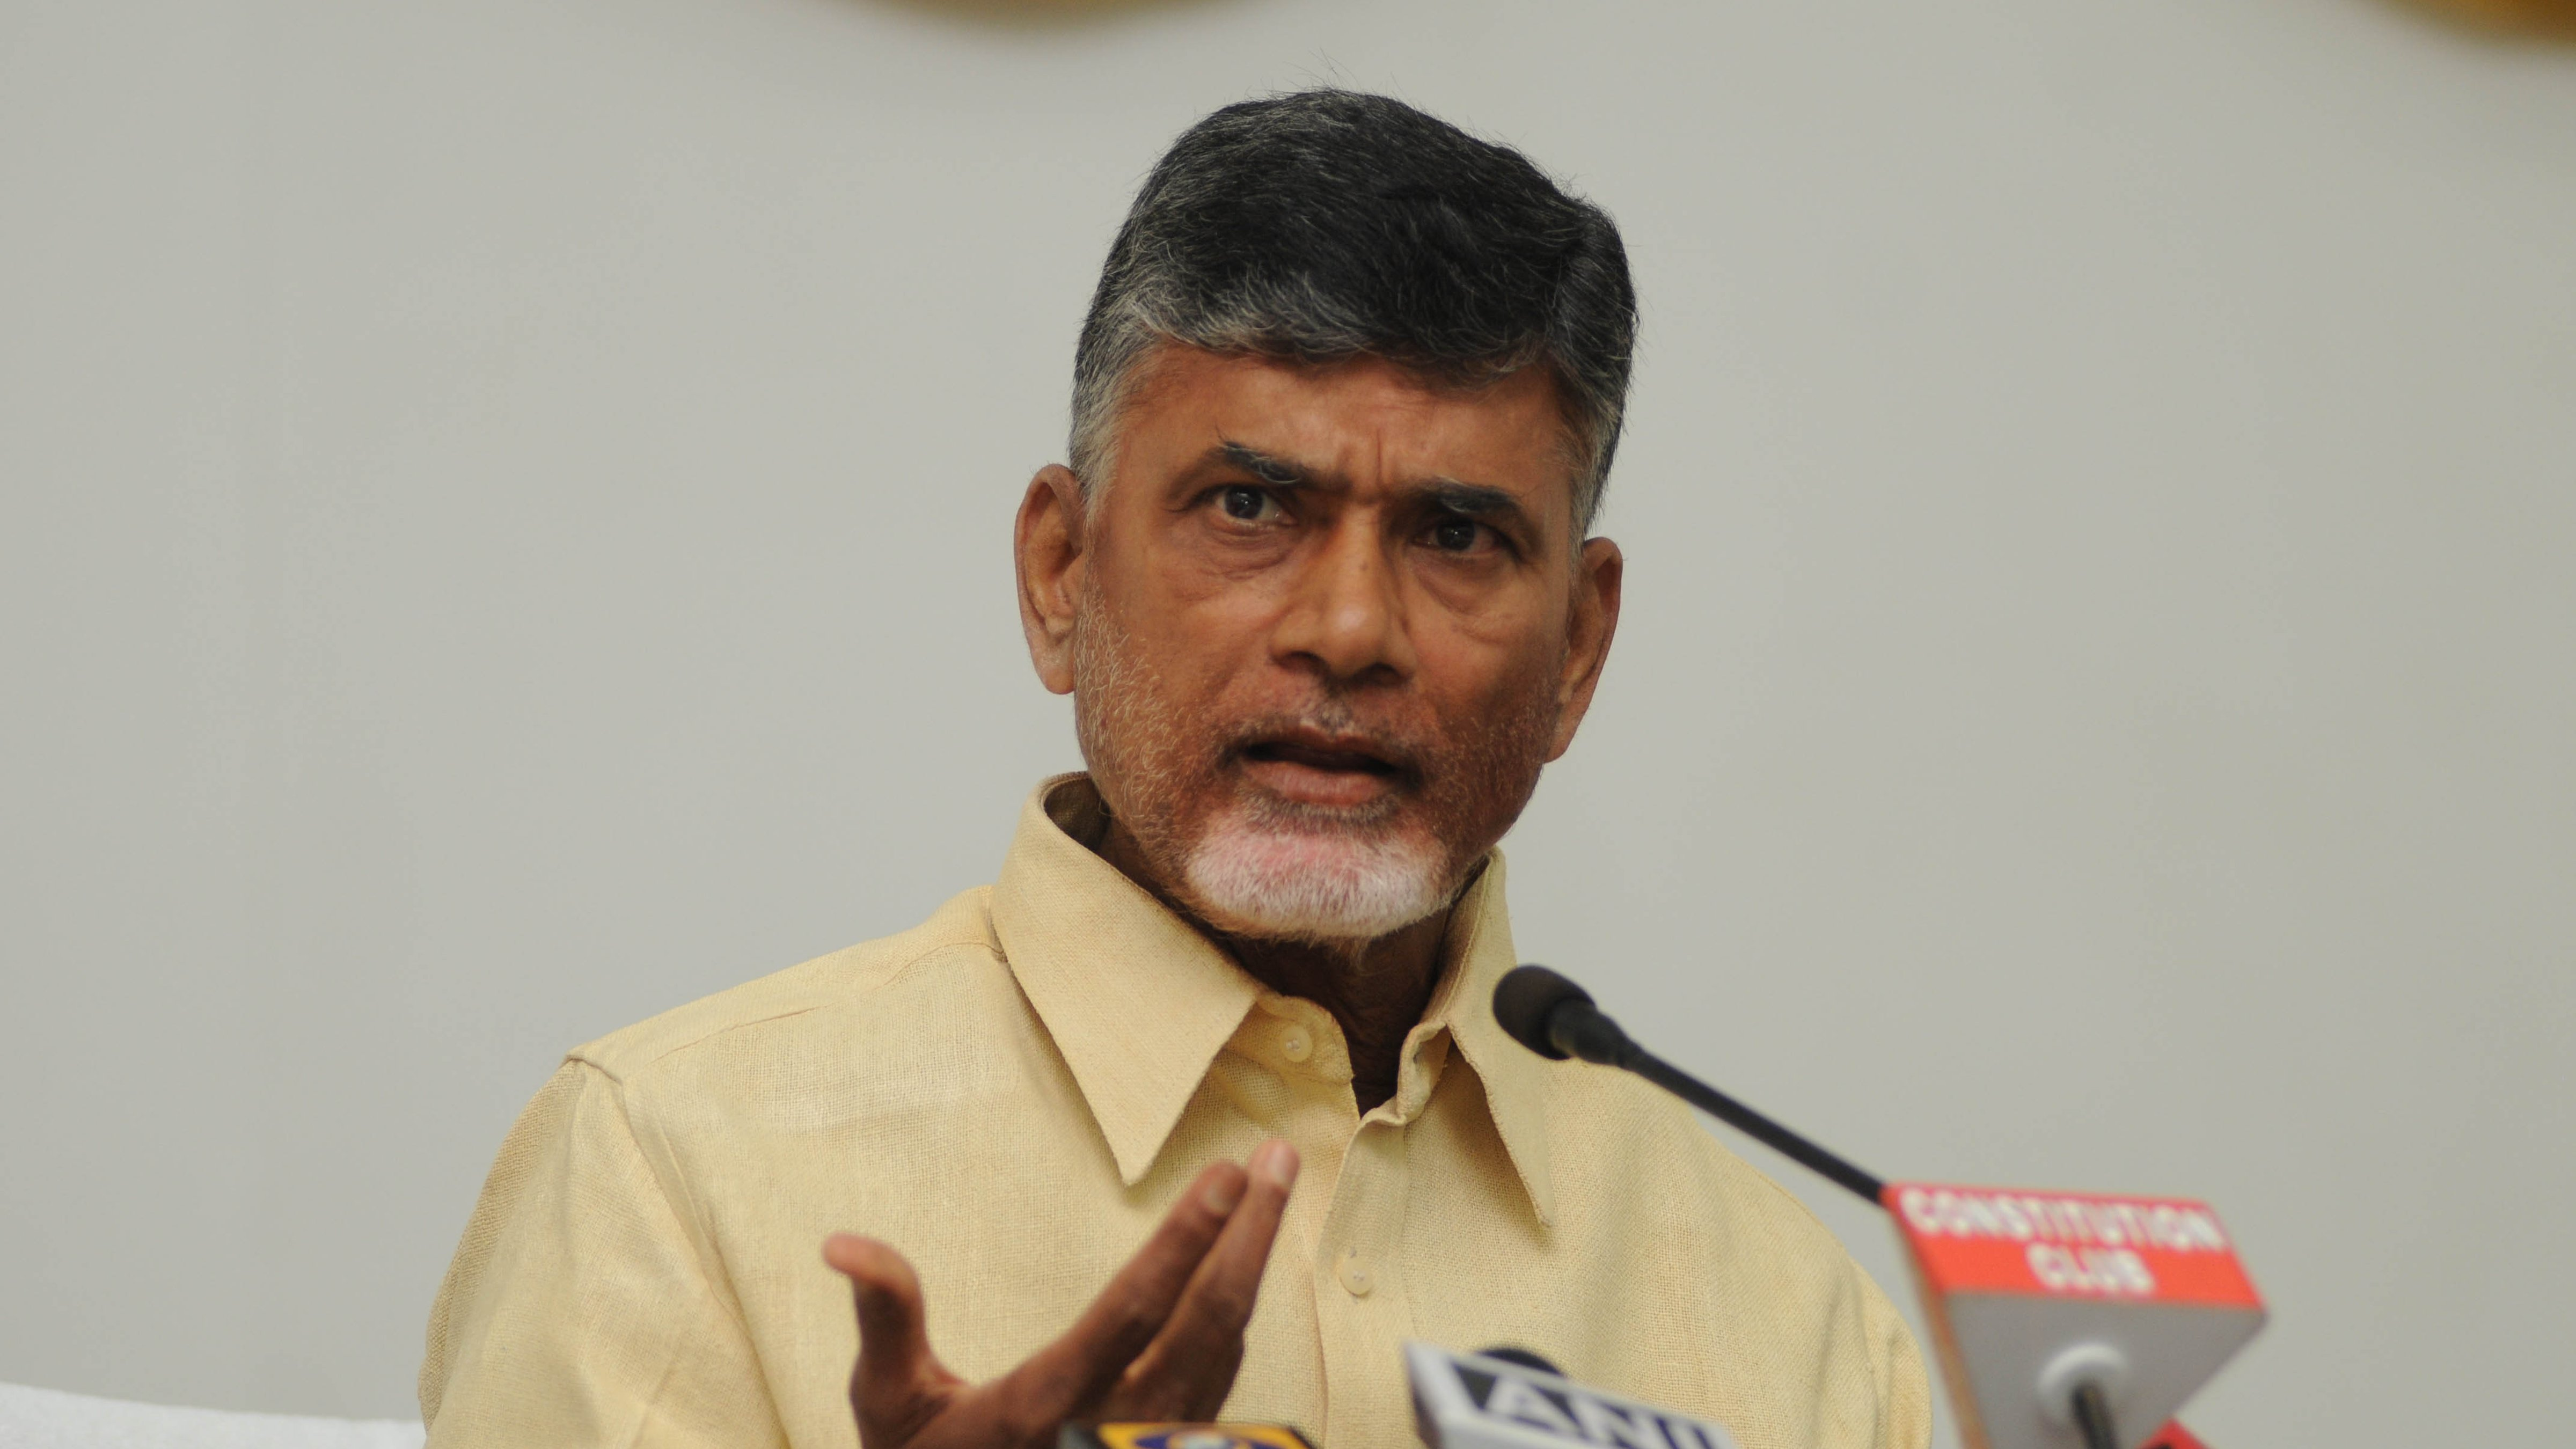 Naidu wants the Centre to fulfil all promises made during Andhra Pradesh's bifurcation in 2014 and alleged that the Prime Minister was not following raj dharma by denying the state special status.